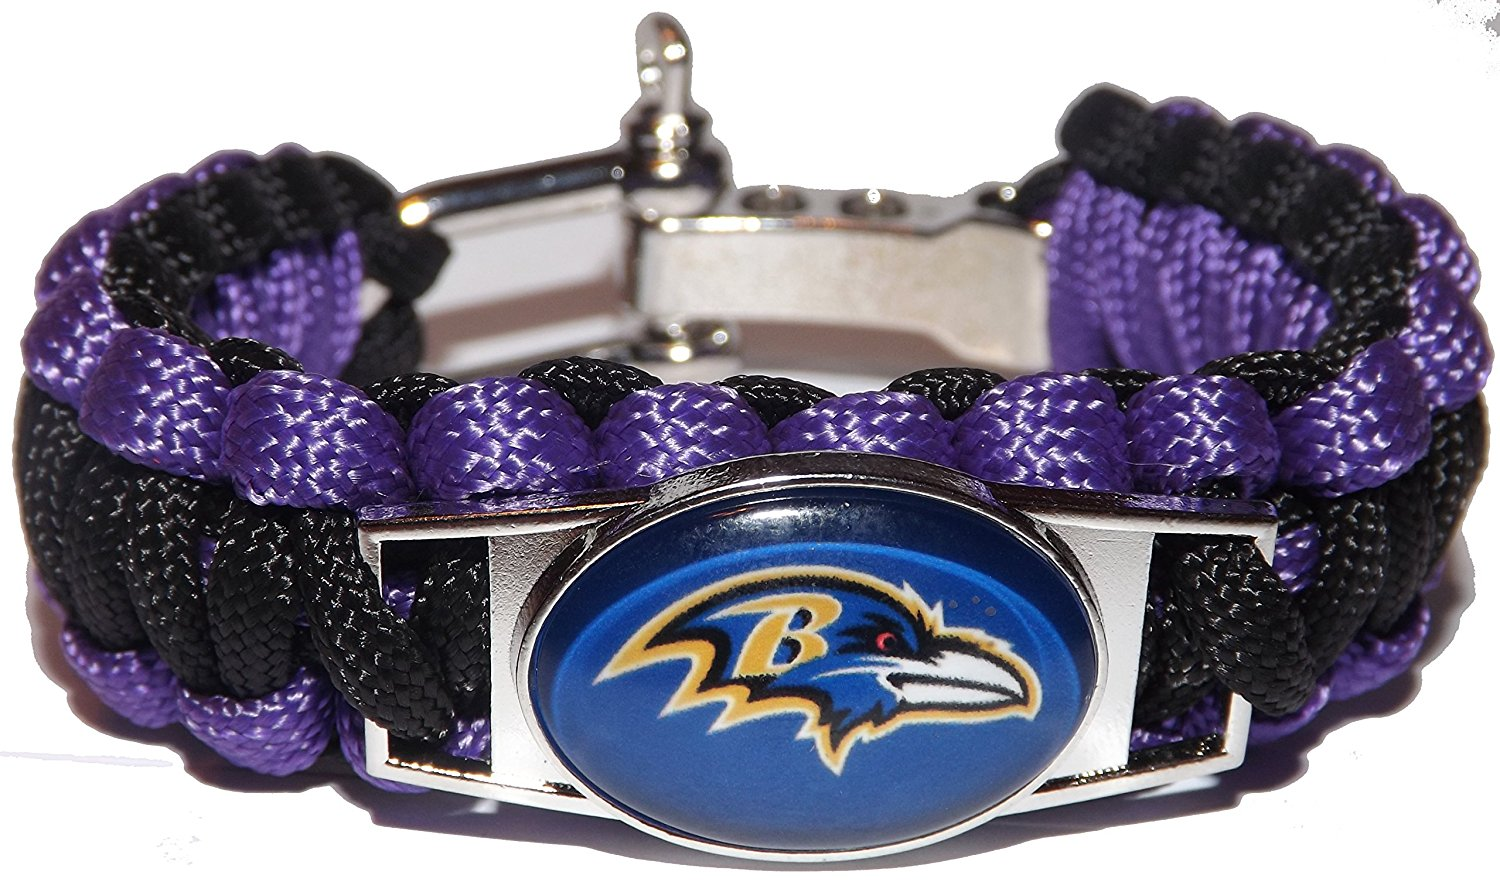 Baltimore Ravens Football Team Survival Paracord Bracelet - Custom Charm Bracelet (Baltimore Ravens)